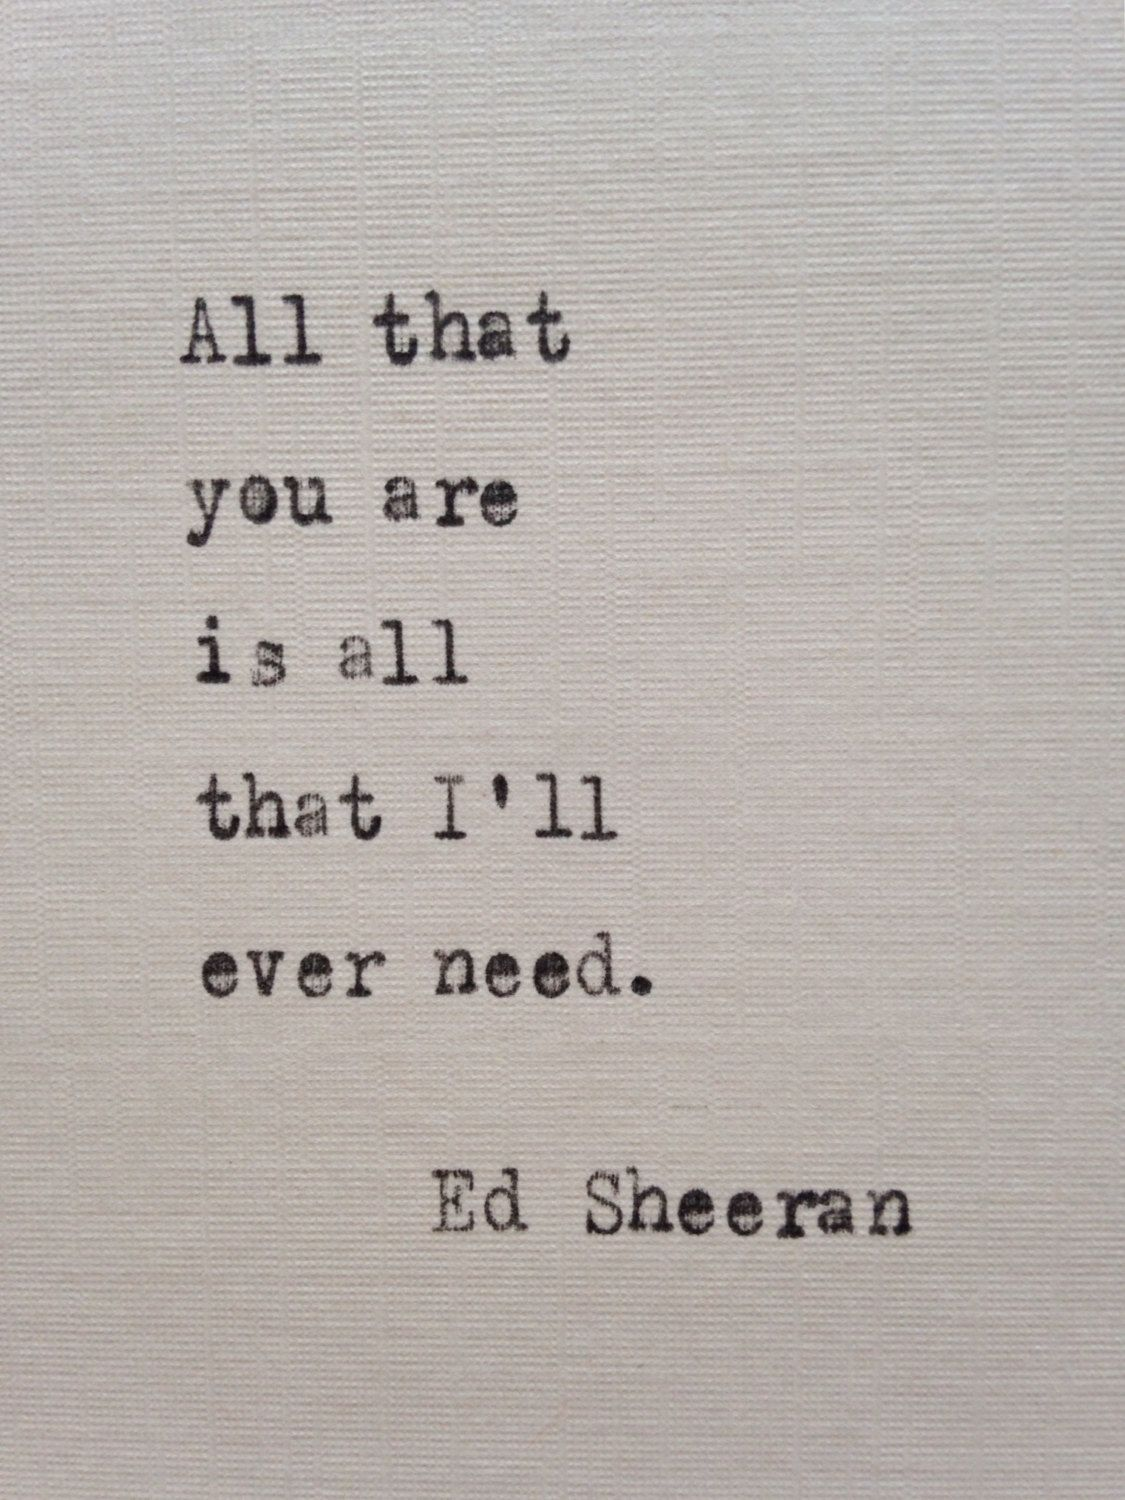 Ed sheeran quote hand typed on antique typewriter quotes